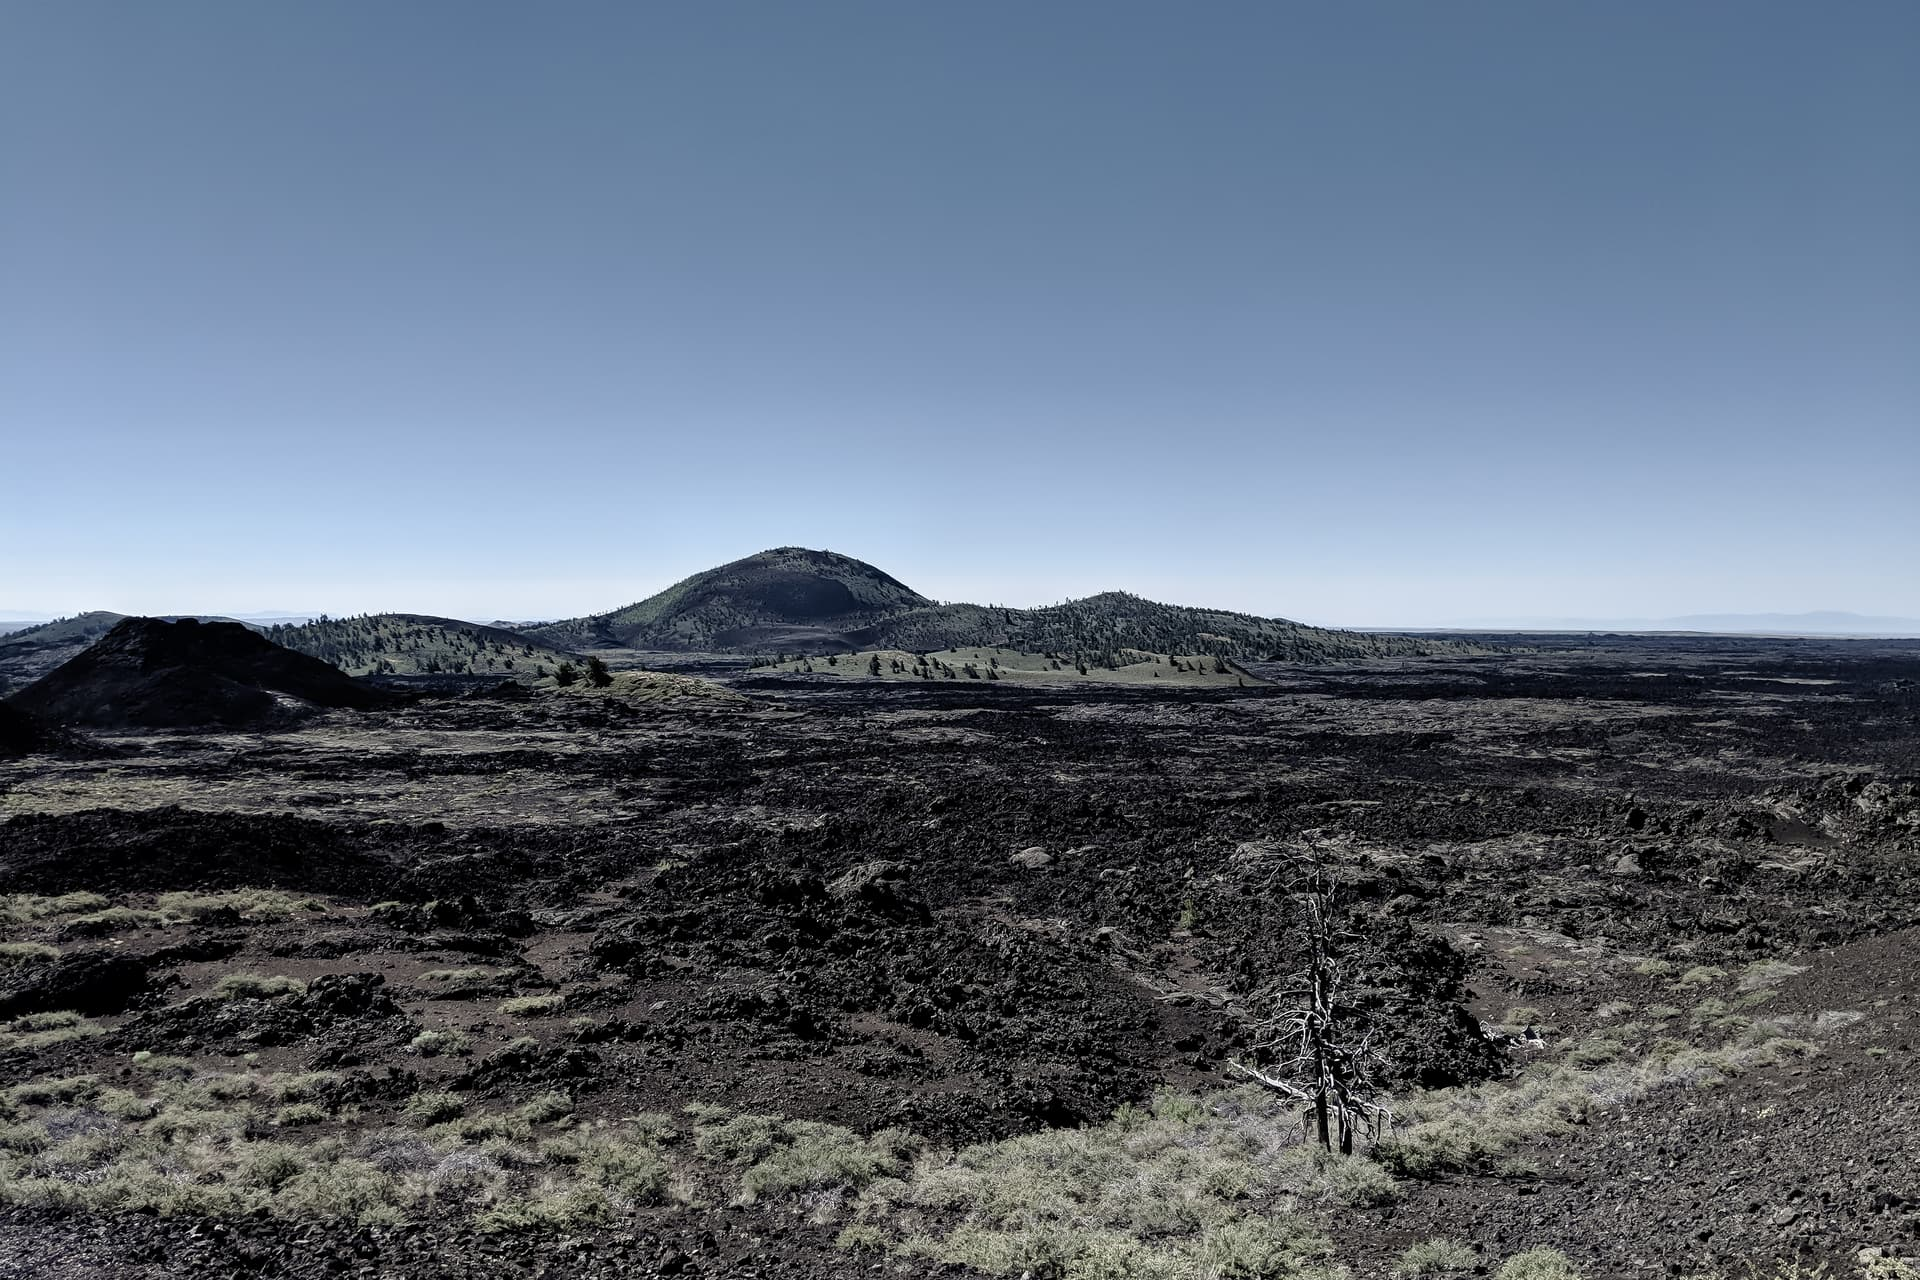 Looking out across the top of a scrub-covered cinder cone across a dark lava flow and to another set of low cinder cones.